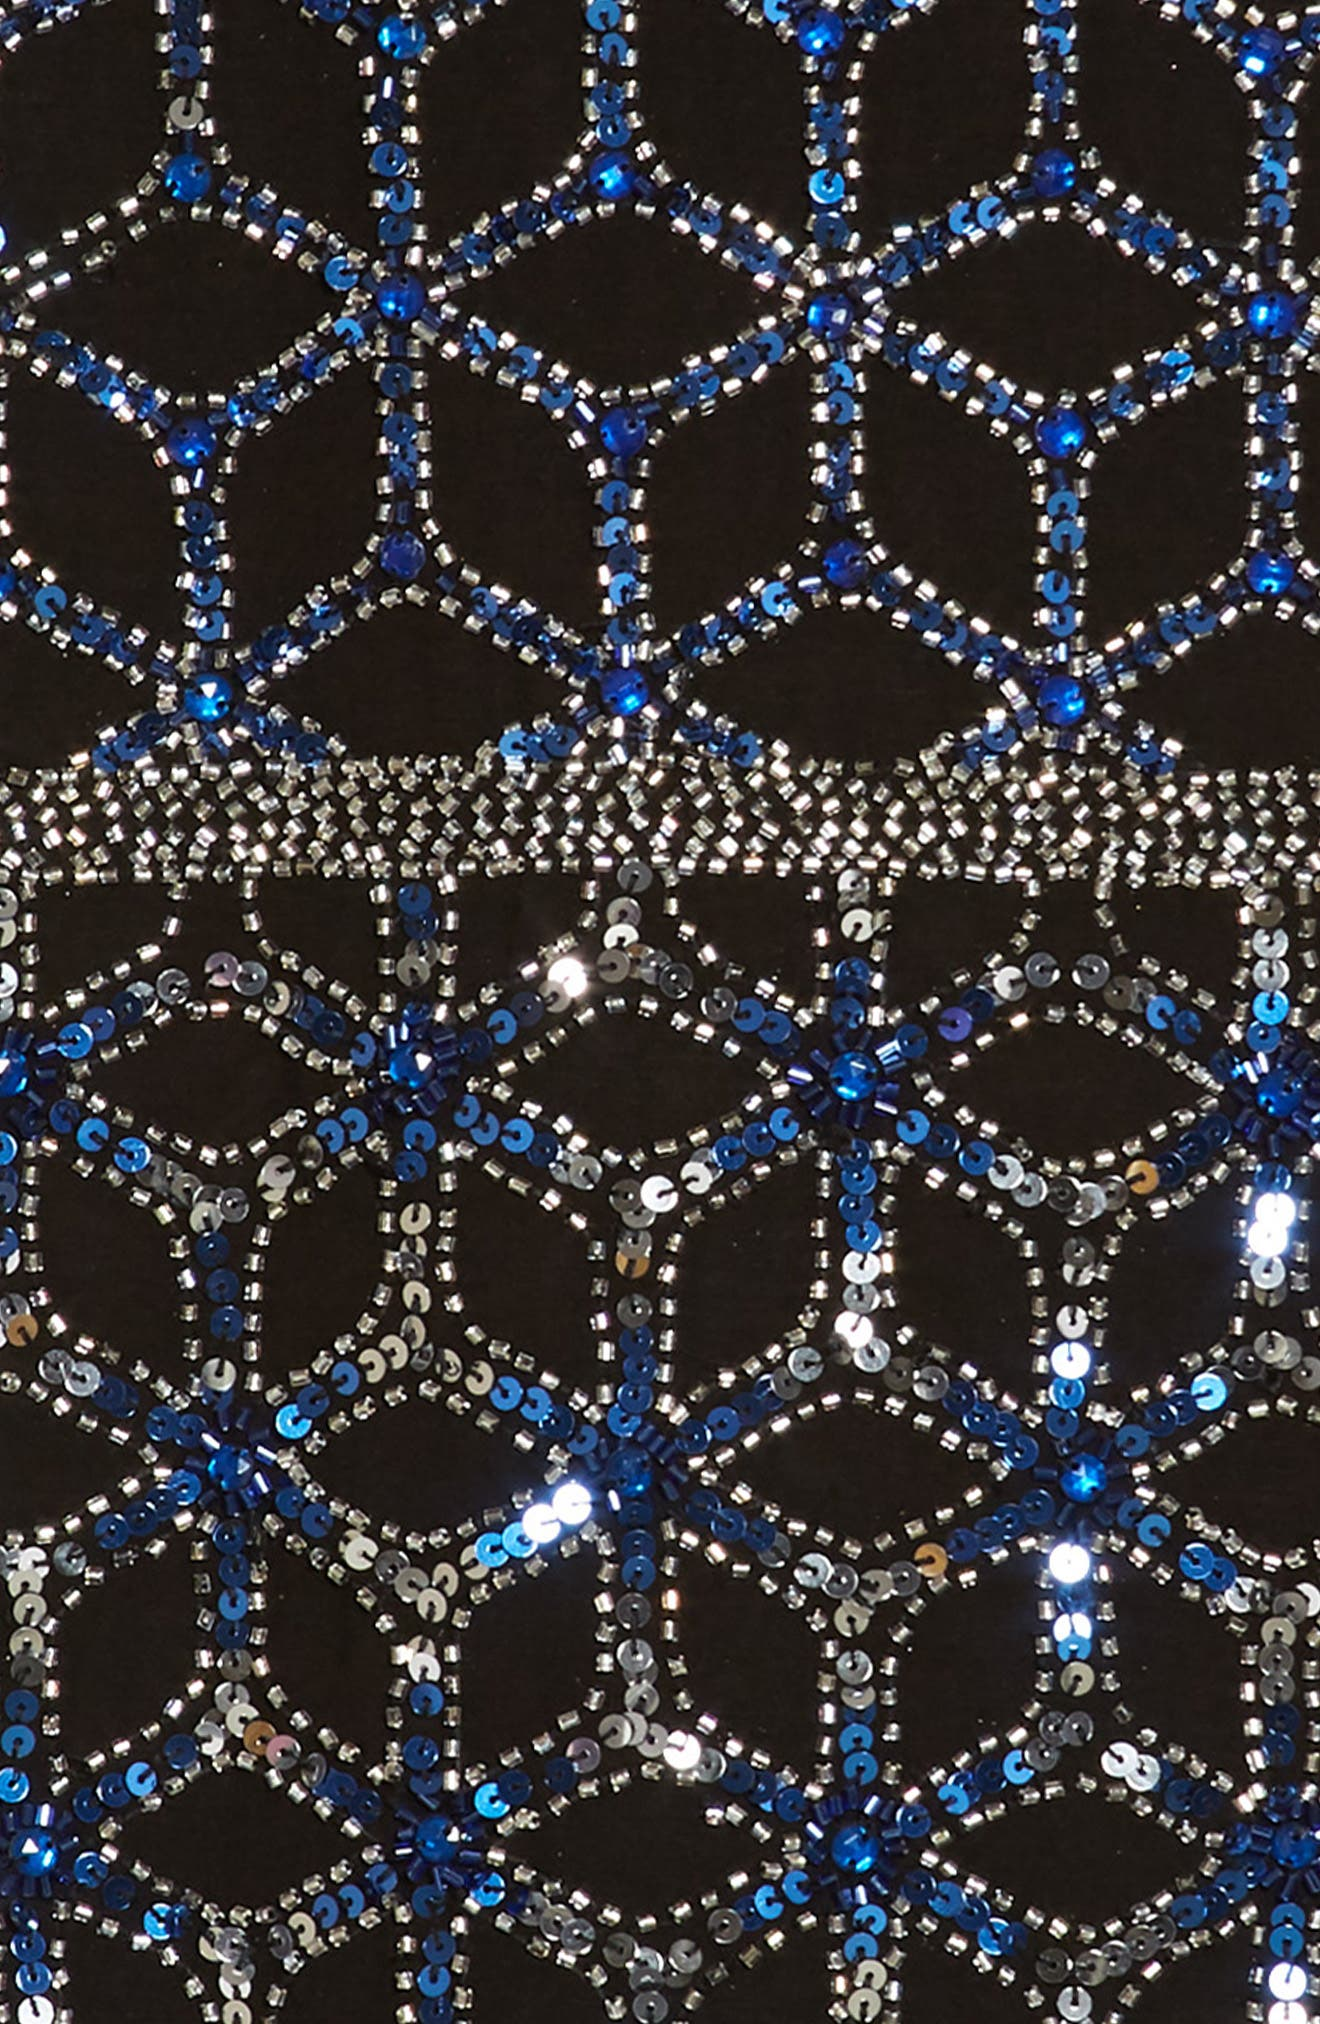 Sequined & Beaded Tank Dress,                             Alternate thumbnail 3, color,                             Black/ Blue